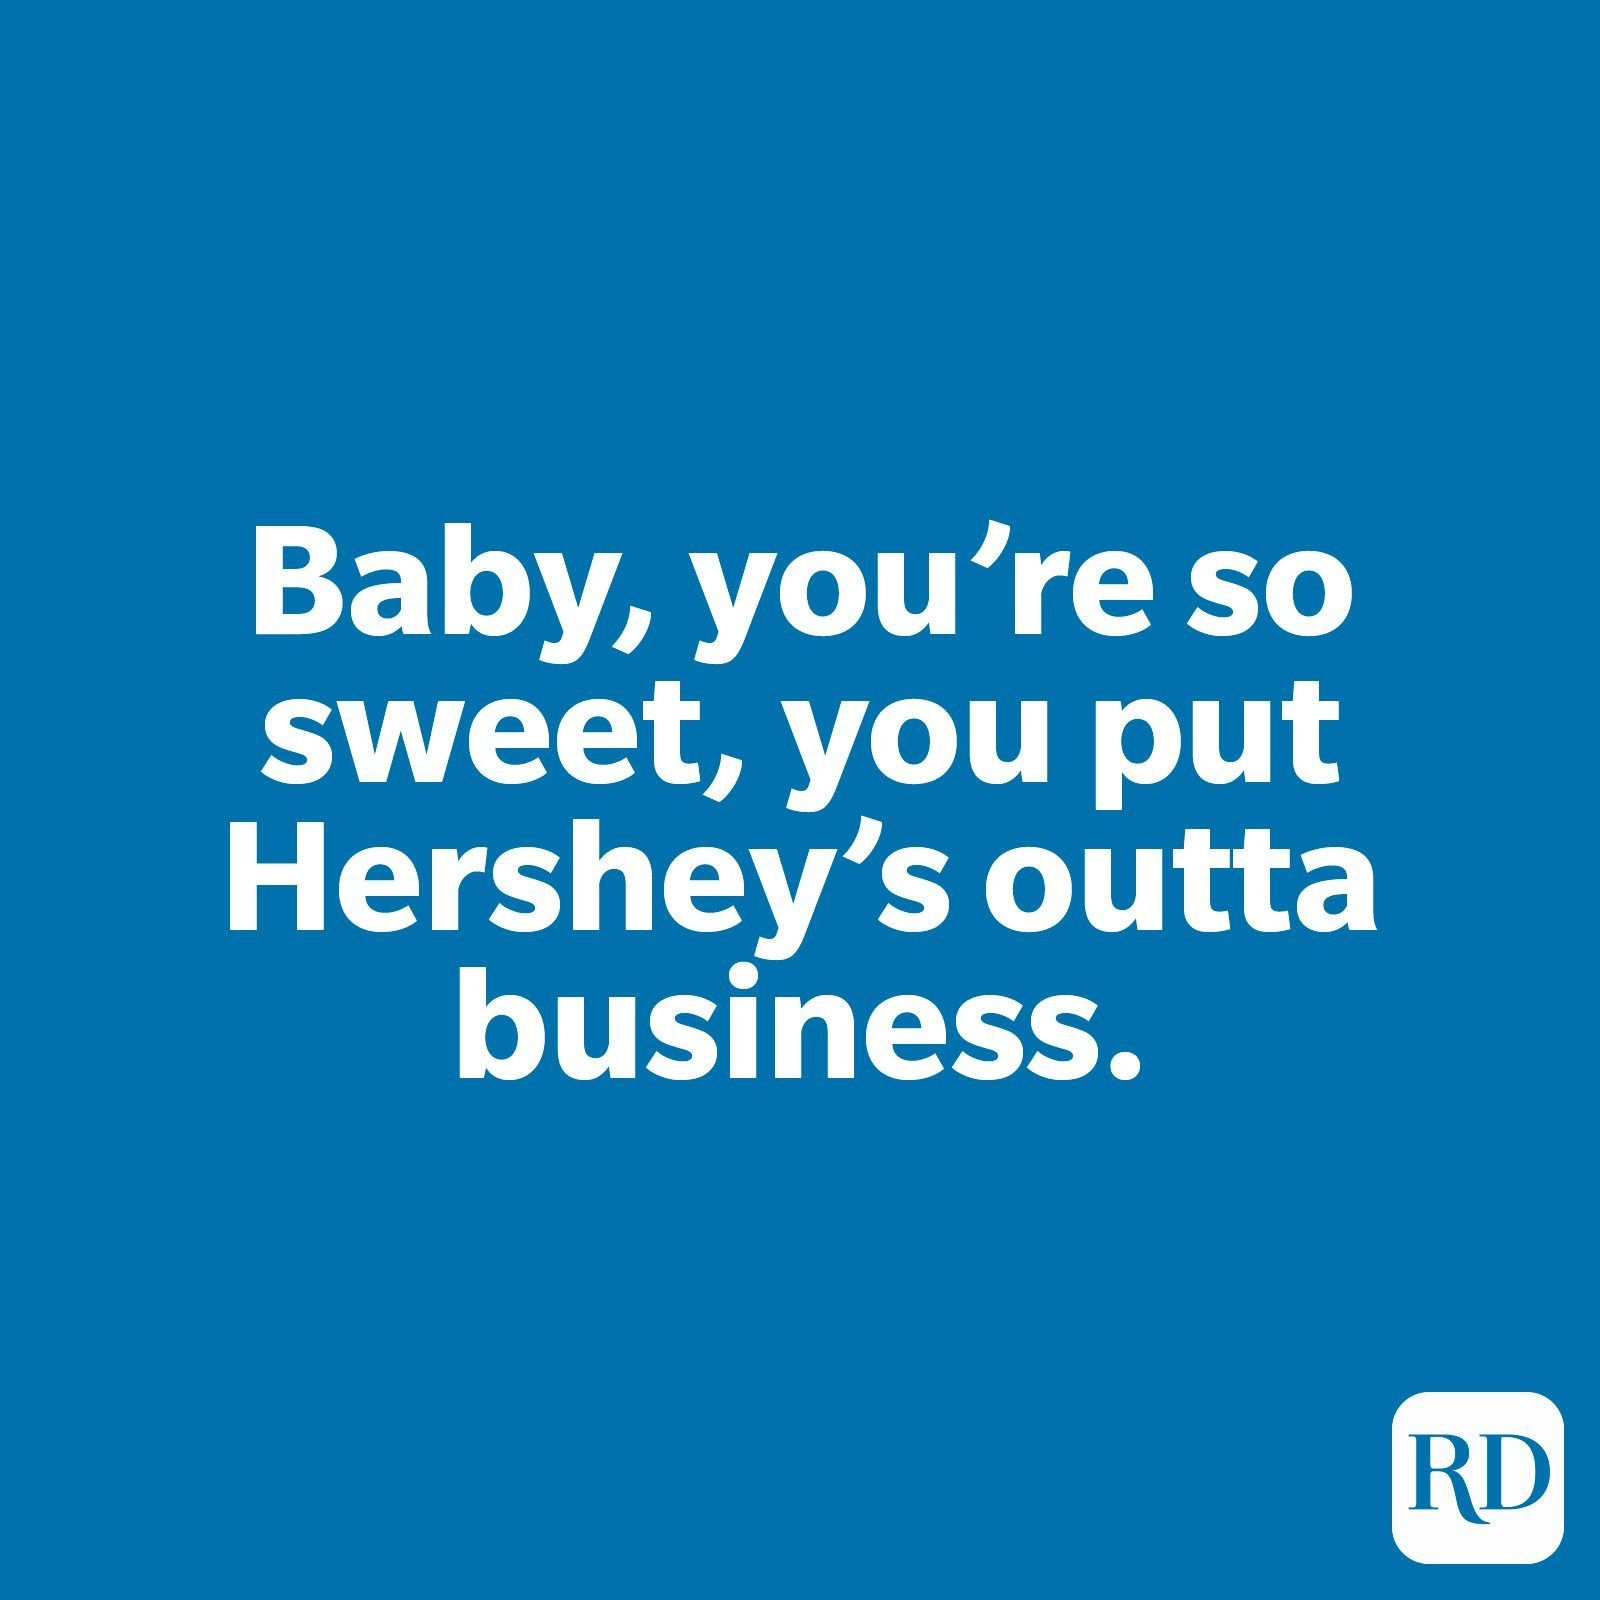 Baby, you're so sweet, you put Hershey's outta business.